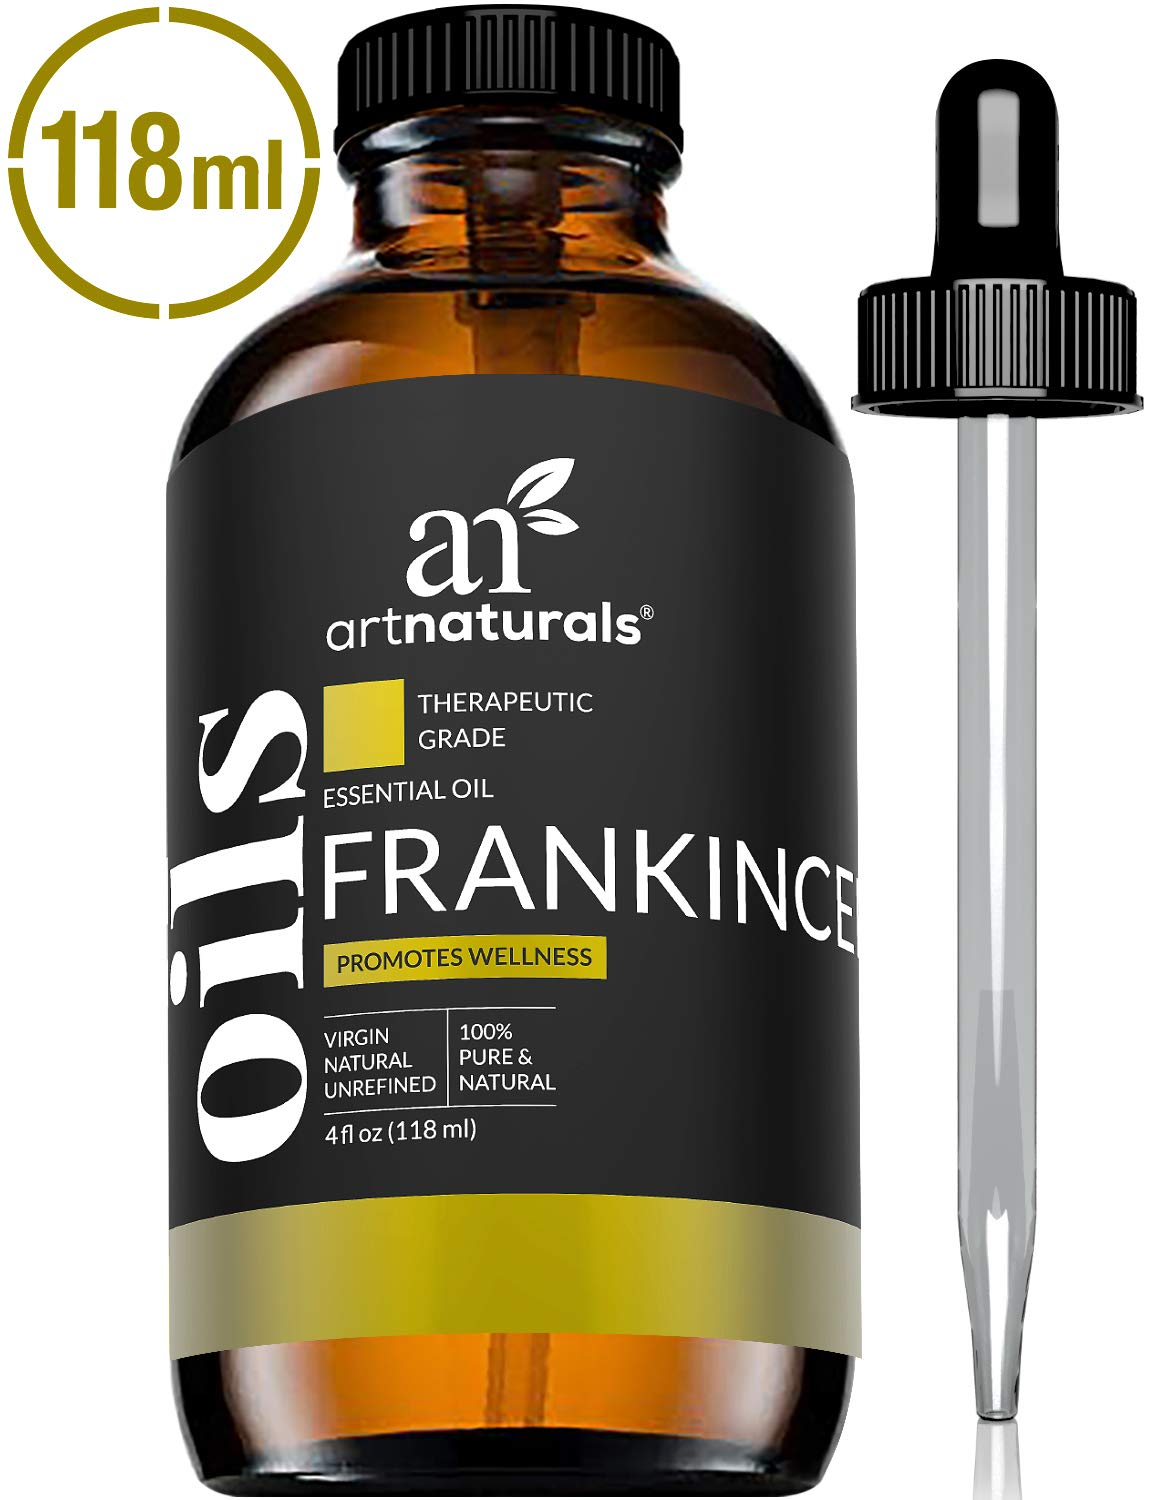 ArtNaturals 100% Pure Frankincense Essential Oil - (4 Fl Oz / 120ml) - Natural Undiluted Therapeutic Grade - Premium Aromatherapy Quality Oil for Diffuser Internal Use, Skin, and Face - Frankensence by ArtNaturals